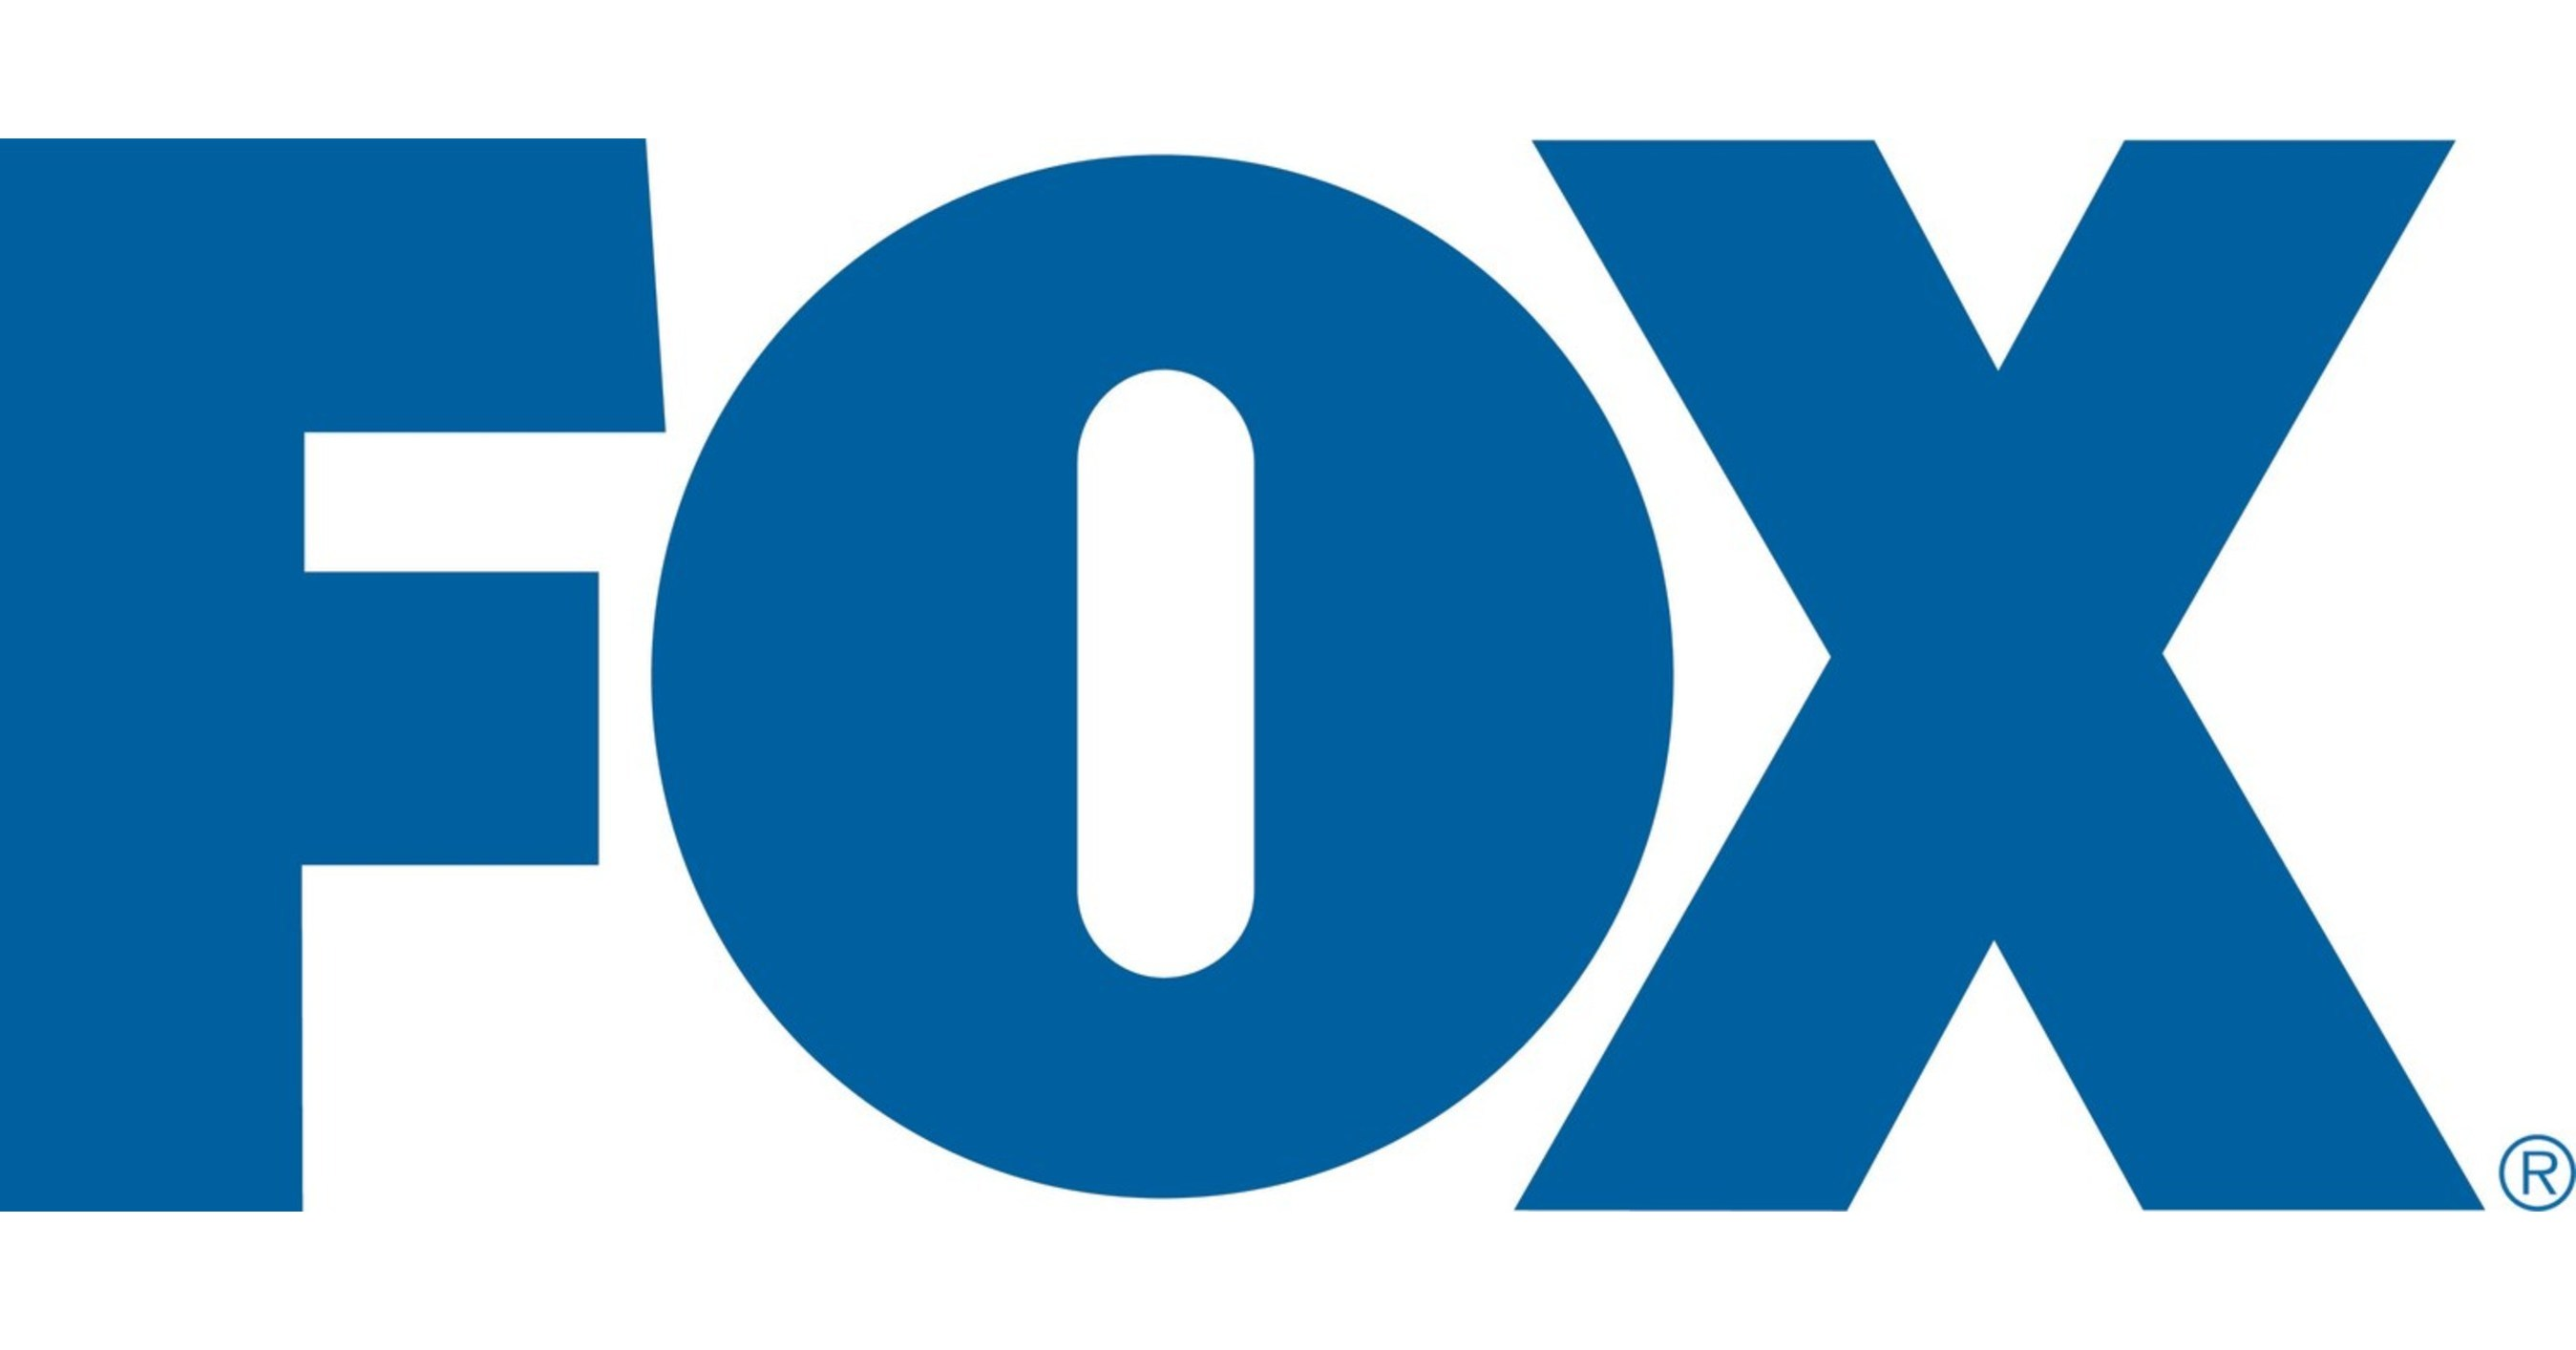 Fox Corporation Announces Correction by FTSE Russell and Removal from Gambling Business Activity Exclusion List